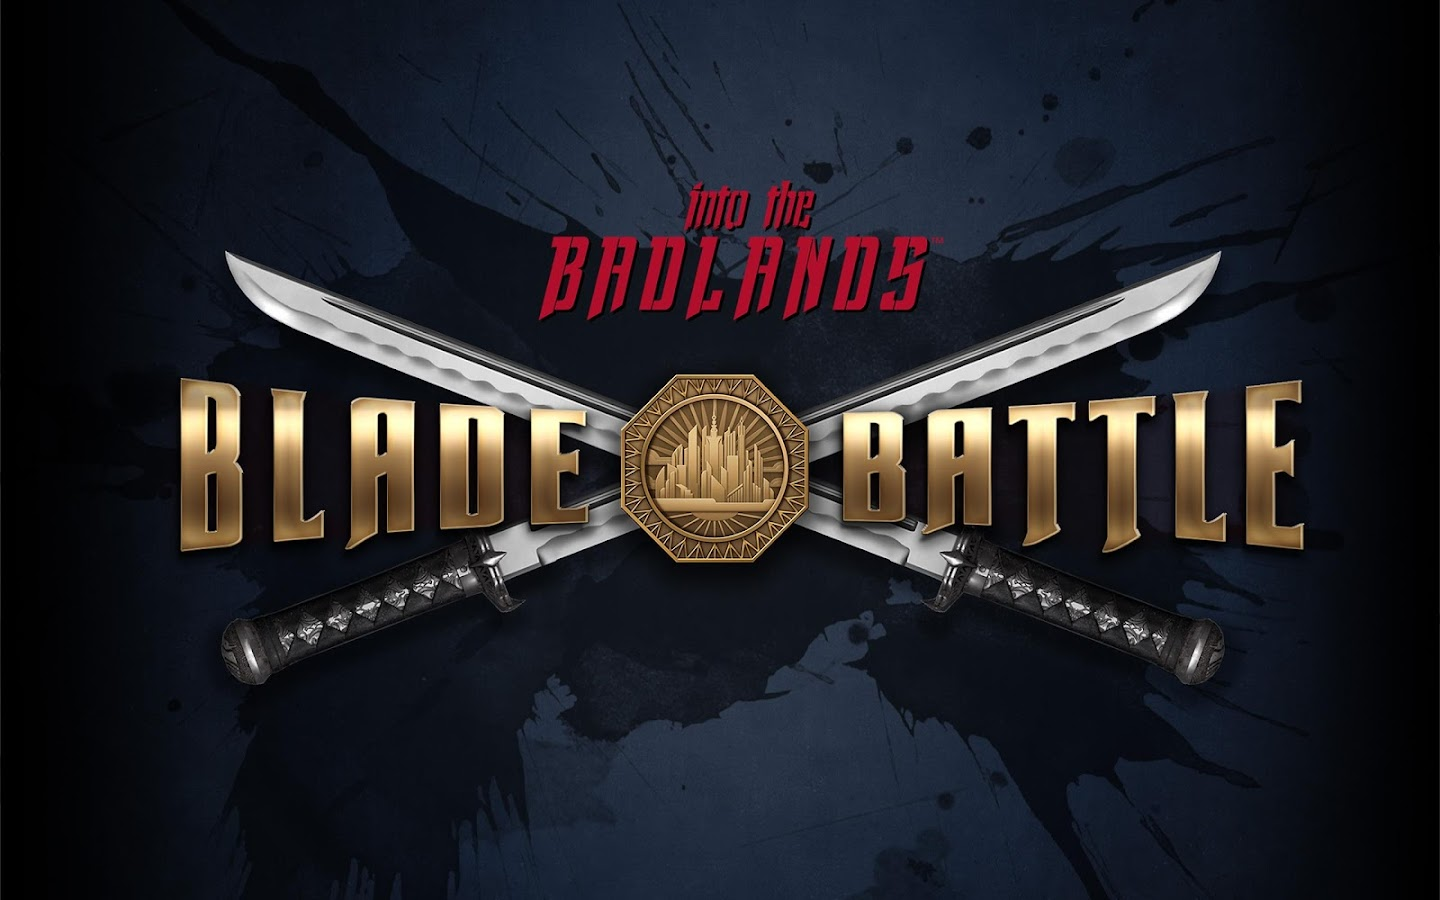 Into the Badlands Blade Battle– captura de ecrã